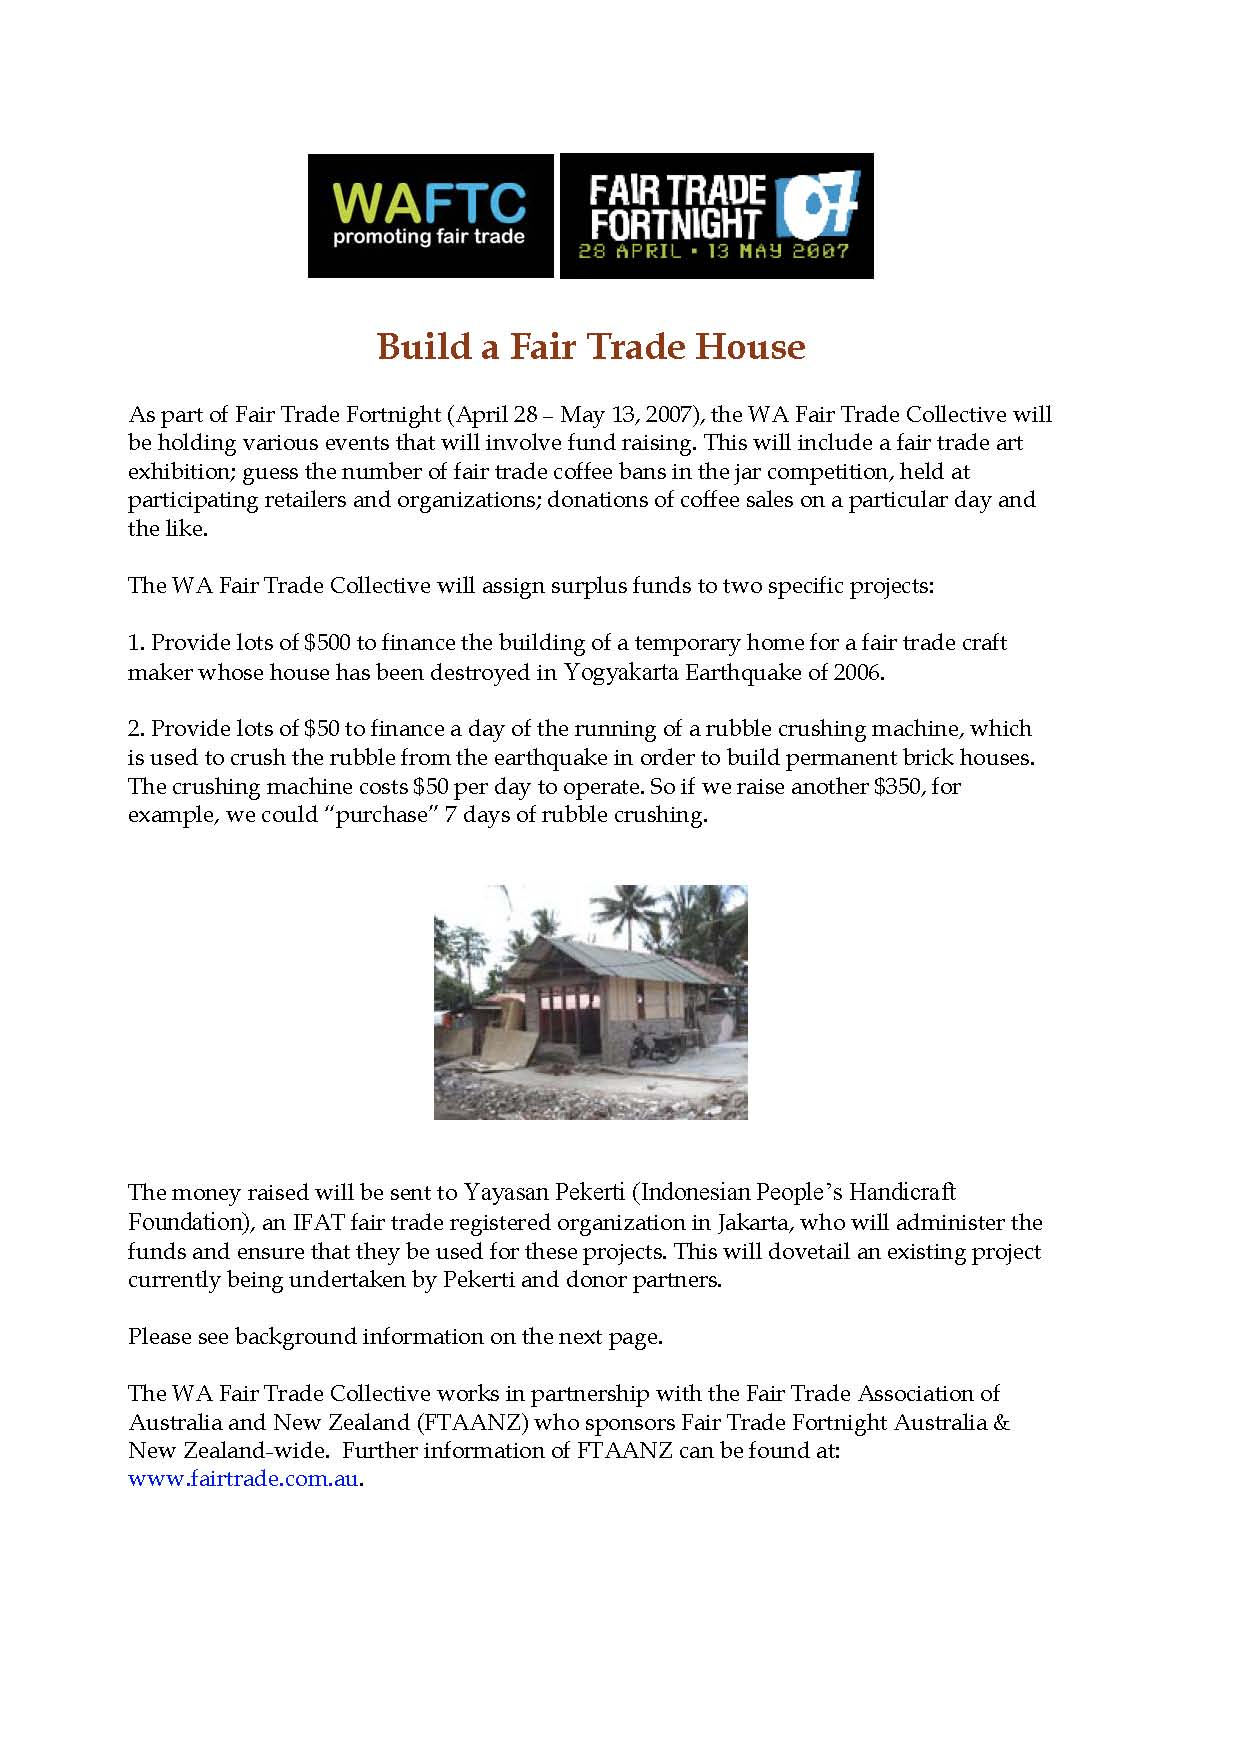 build_a_fair_trade_house_2007_08_Page_1.jpg